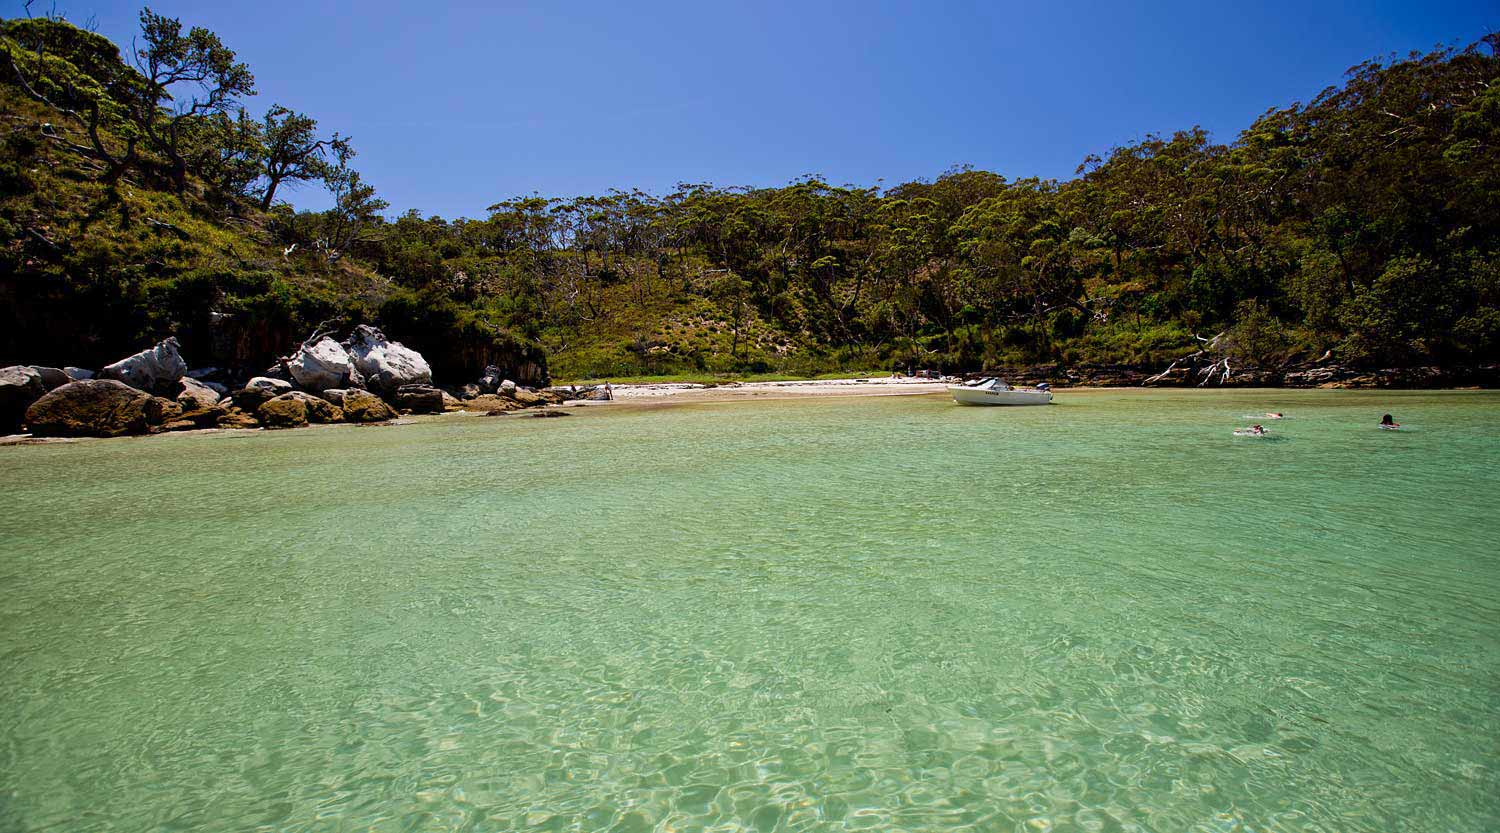 Whiting beach in Booderee National Park is stunning